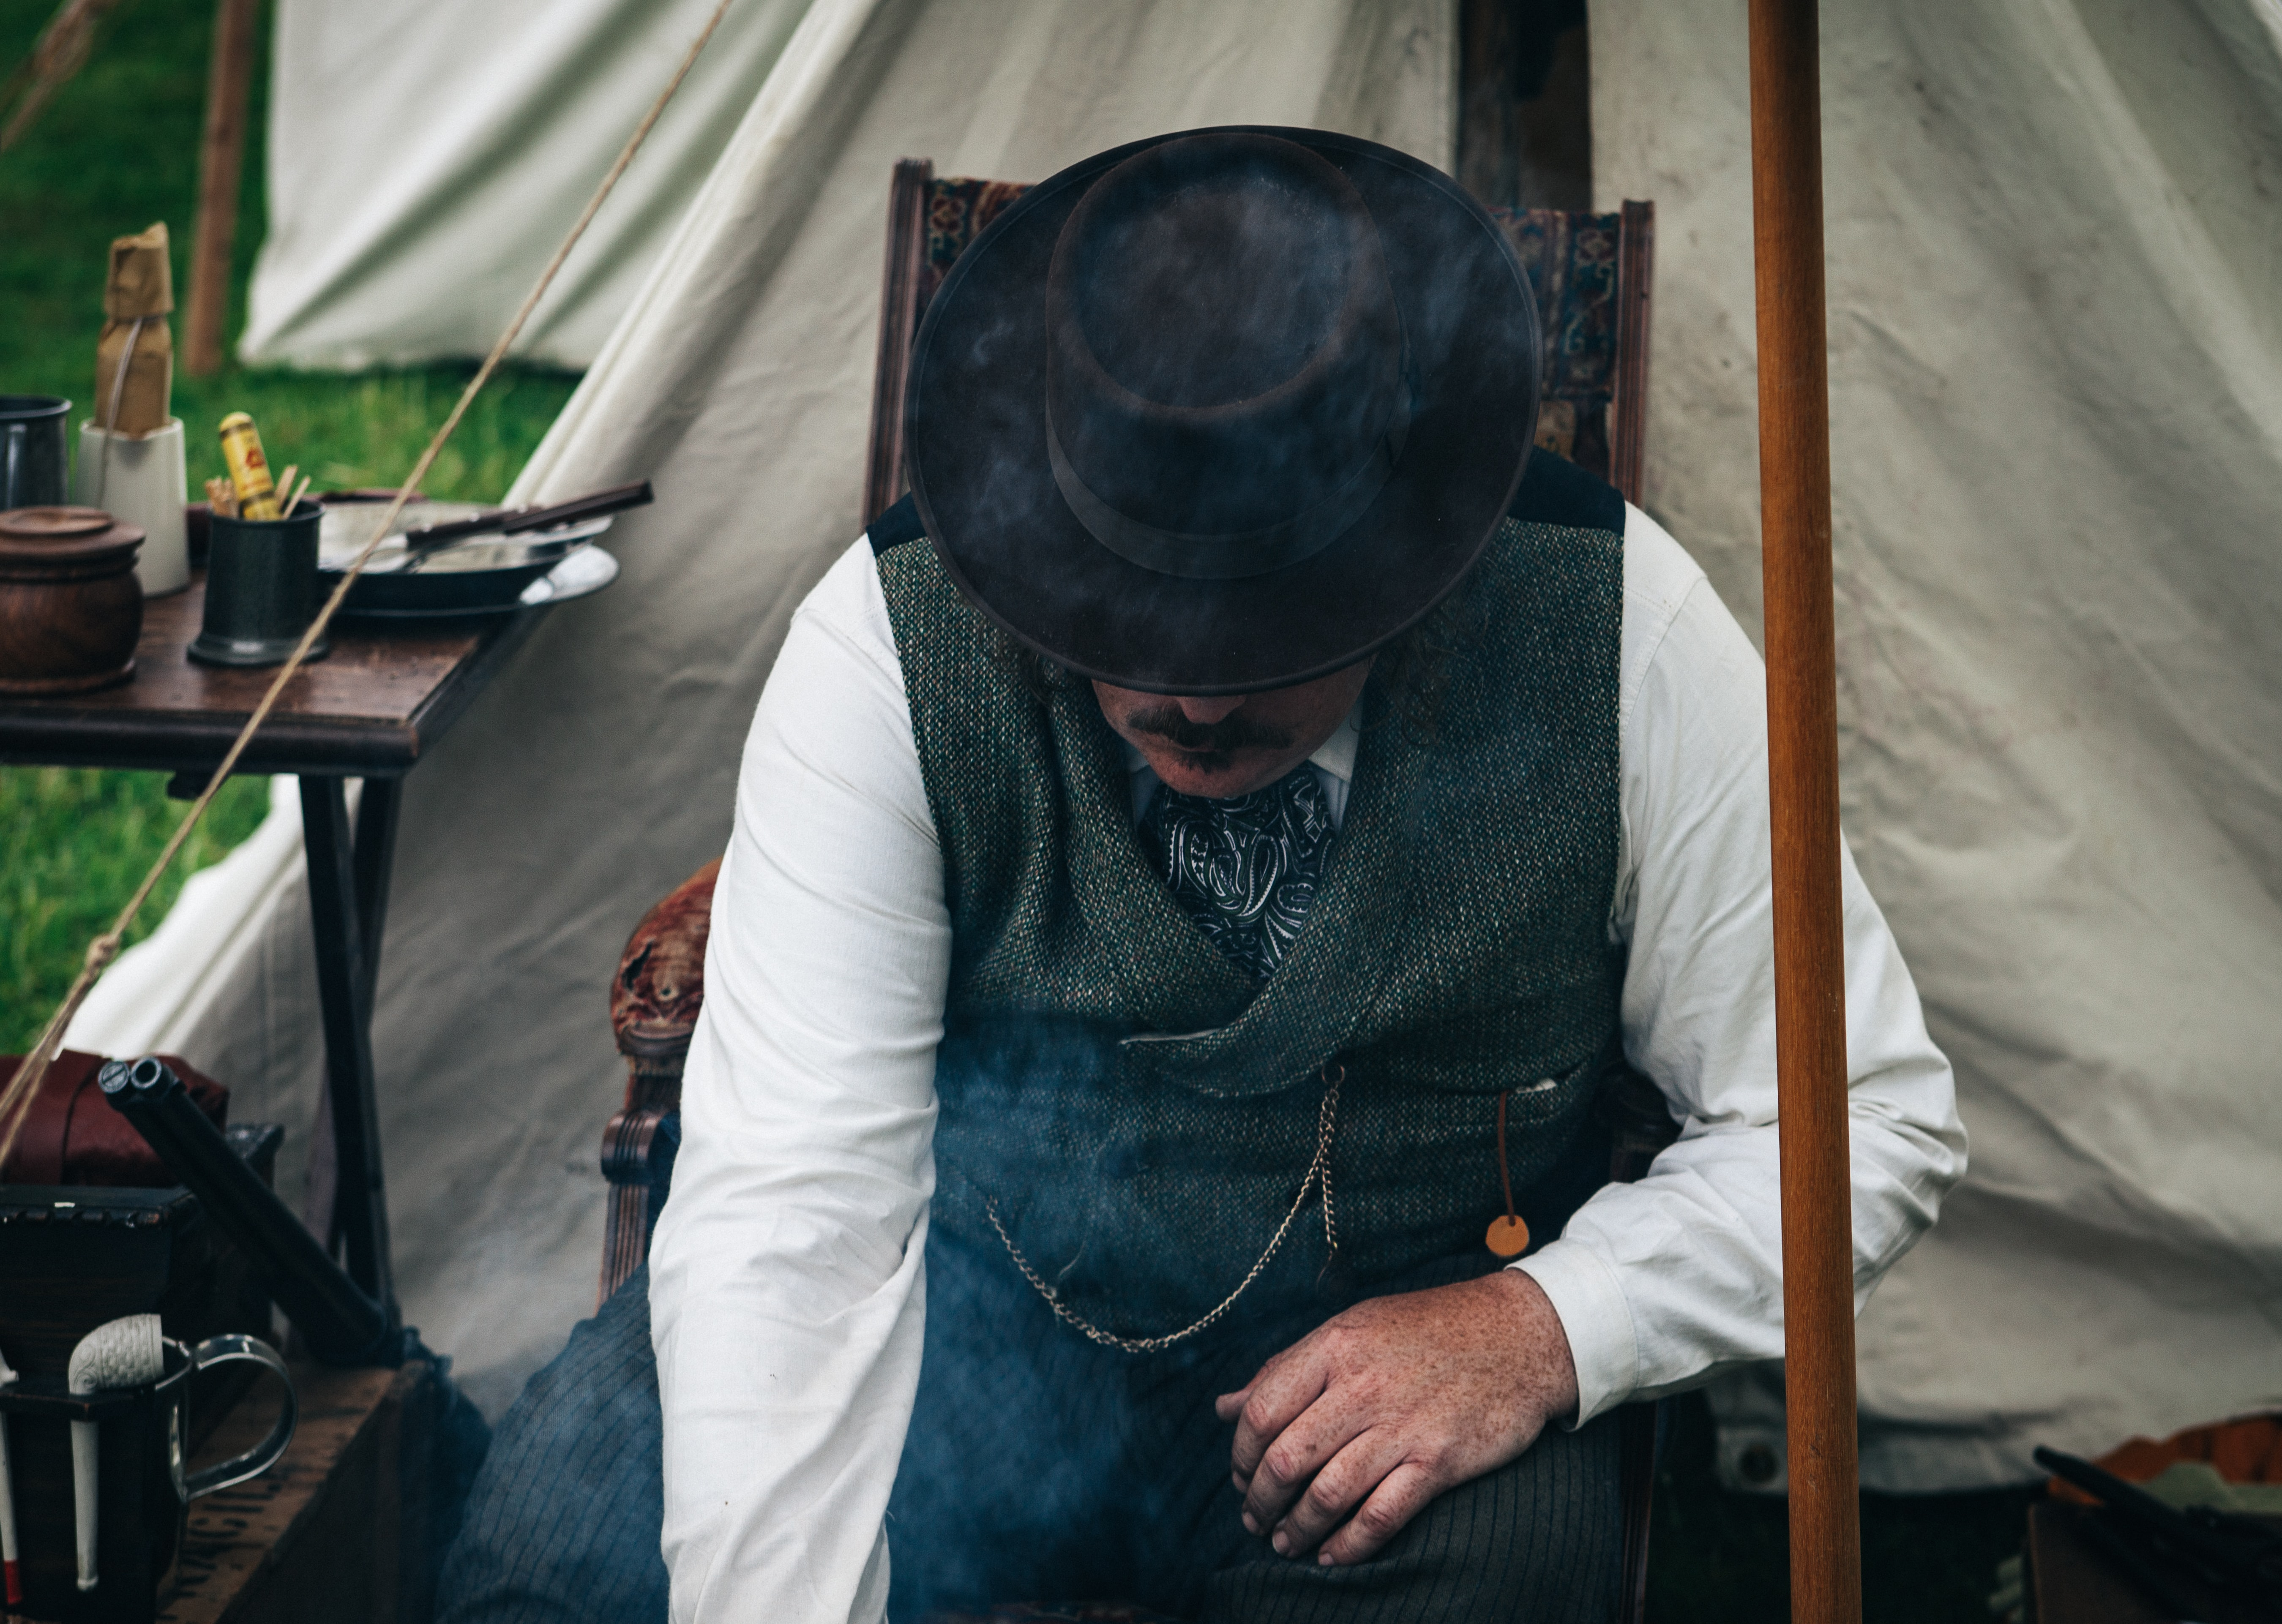 A man with a mustache bends down while sitting on a chair inside a tent